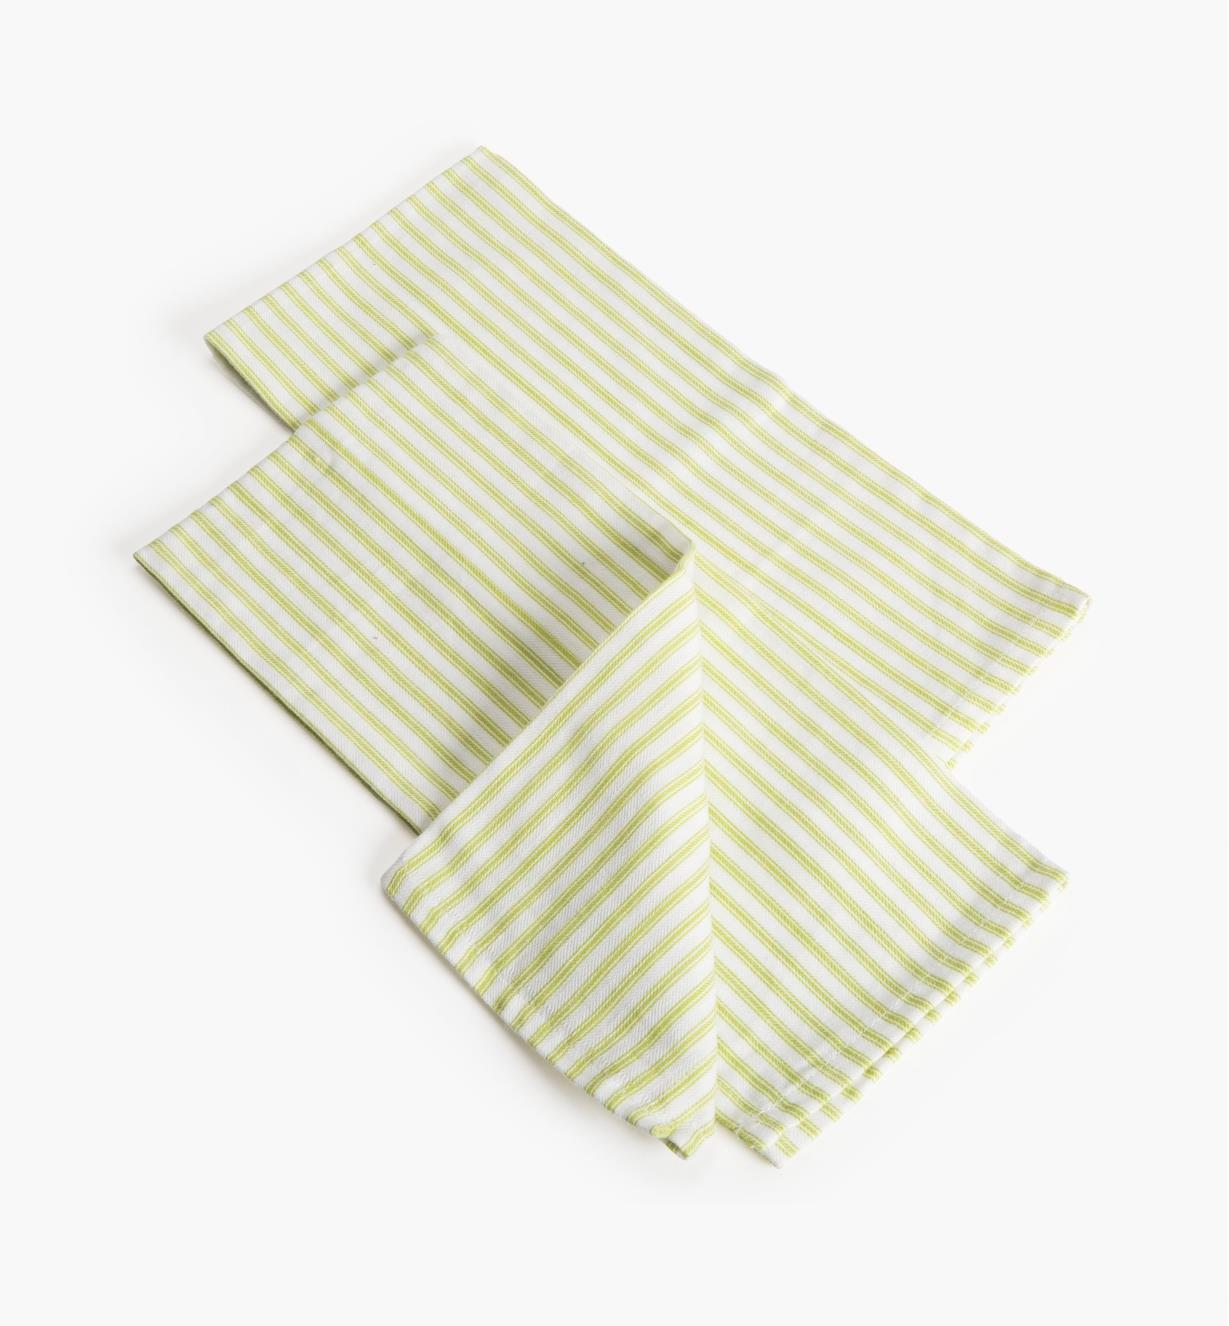 88K5861 - Green Stripe Glass Towels, pr.